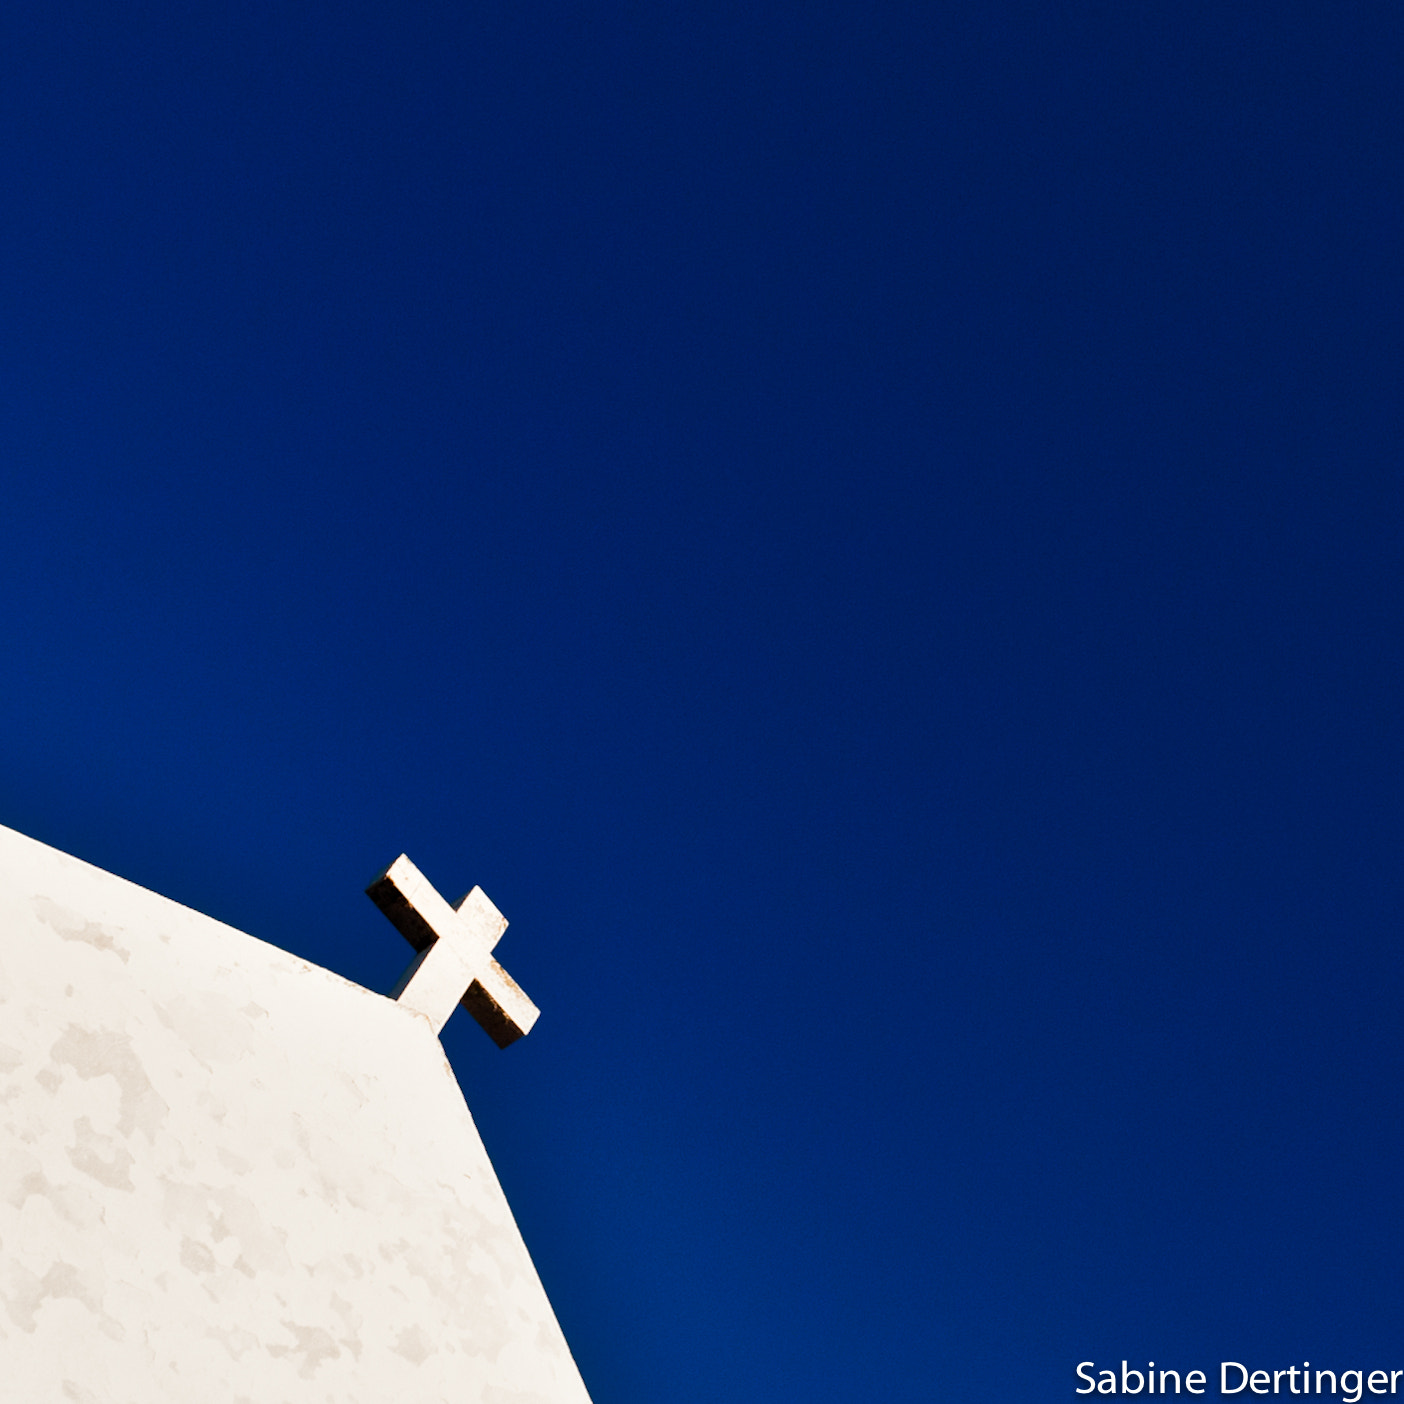 Photograph BlueSky by Sabine Dertinger on 500px